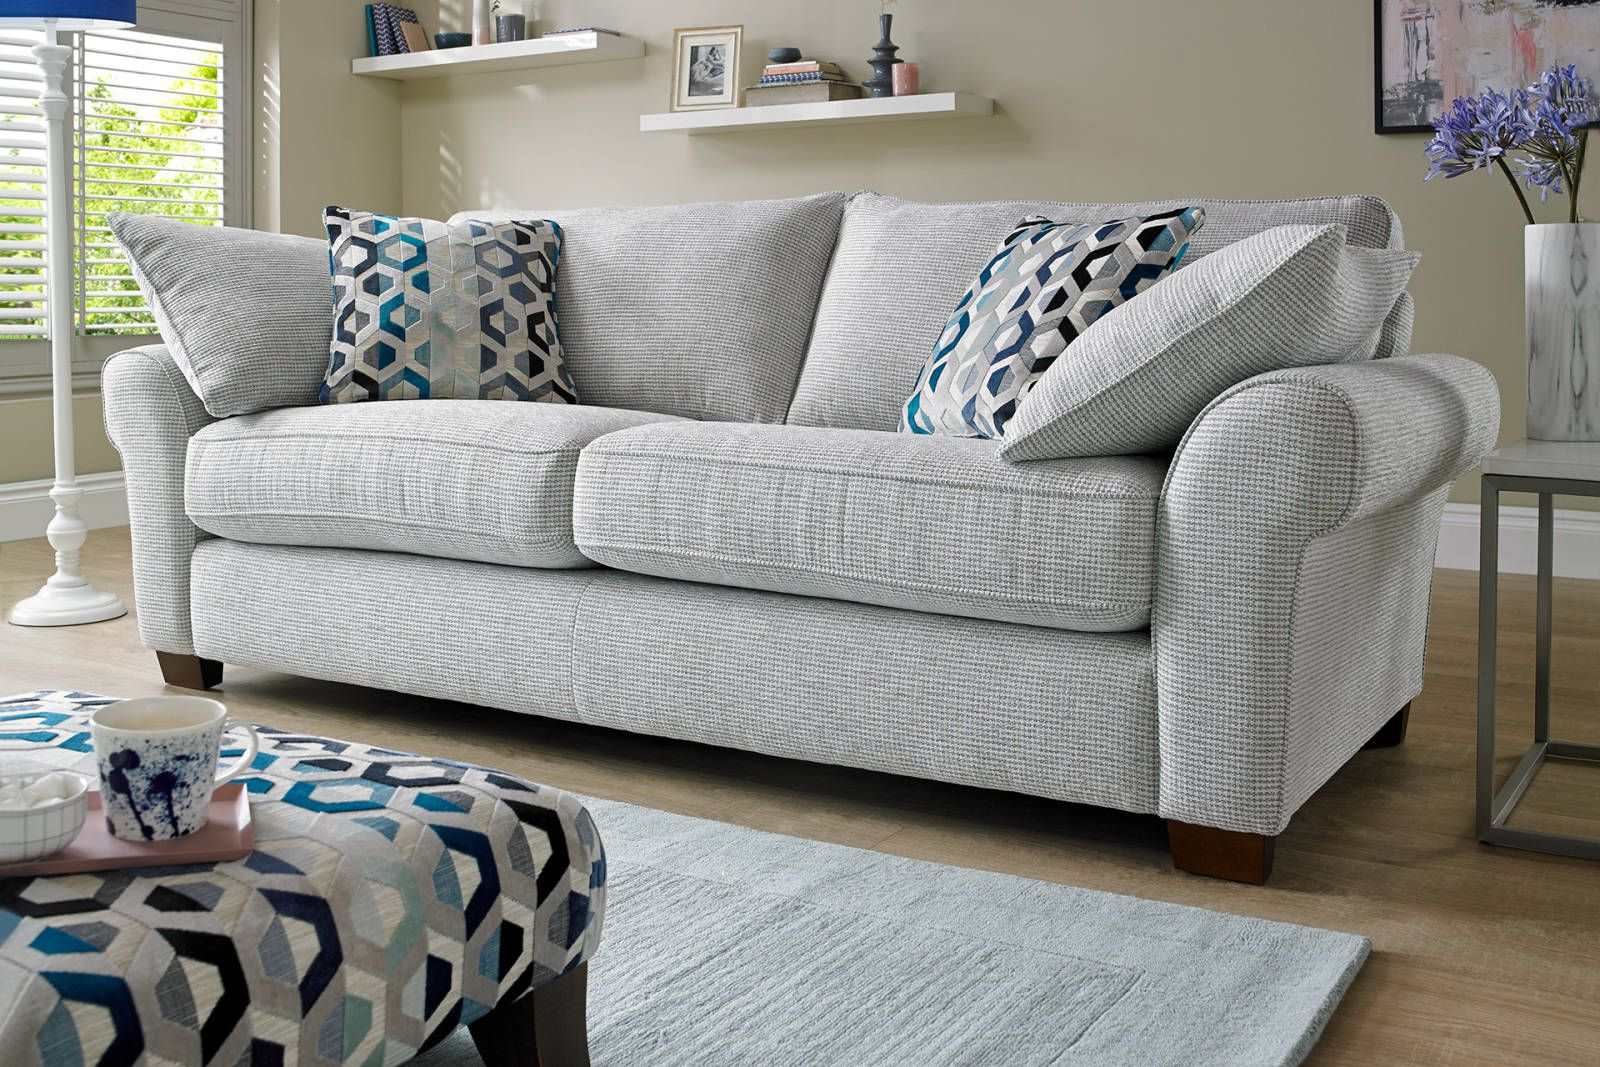 Sofology Online Support Rosie Sofology 74 High Street Sofa Home Living Room Sofa Shop